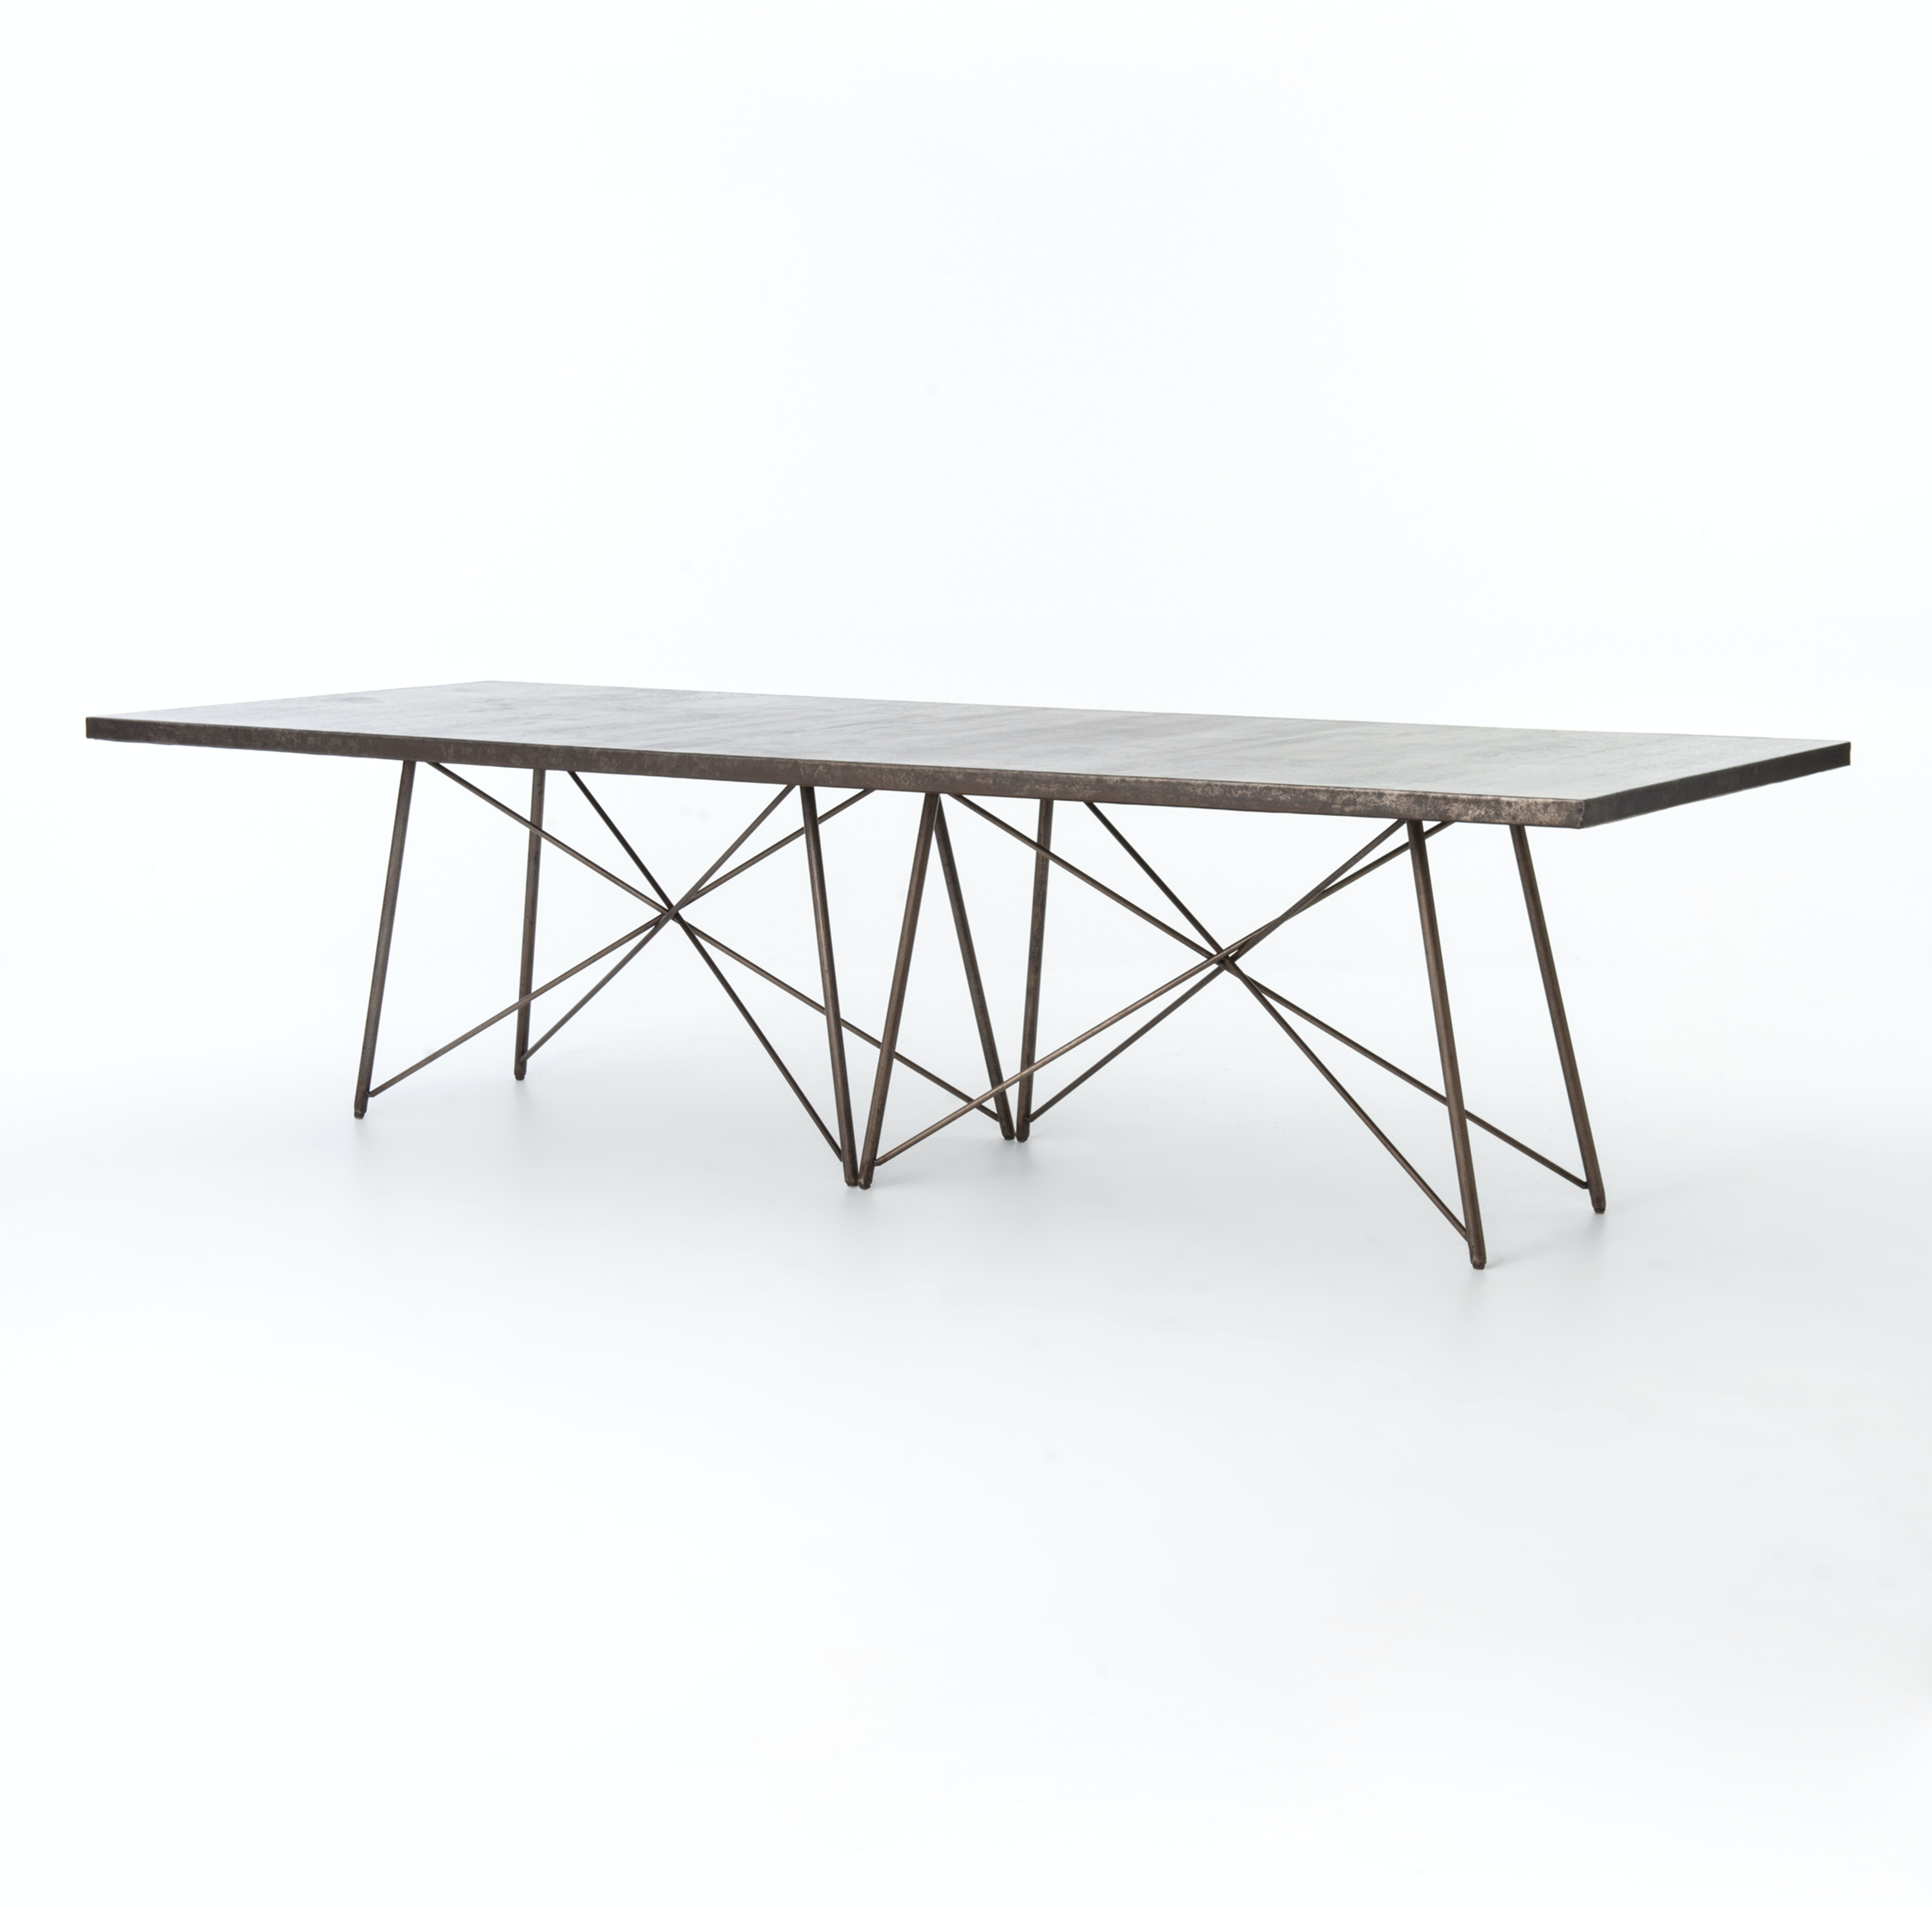 Four Hands Furniture UWES 027 Dining Room ROMAN 114 DINING TABLE